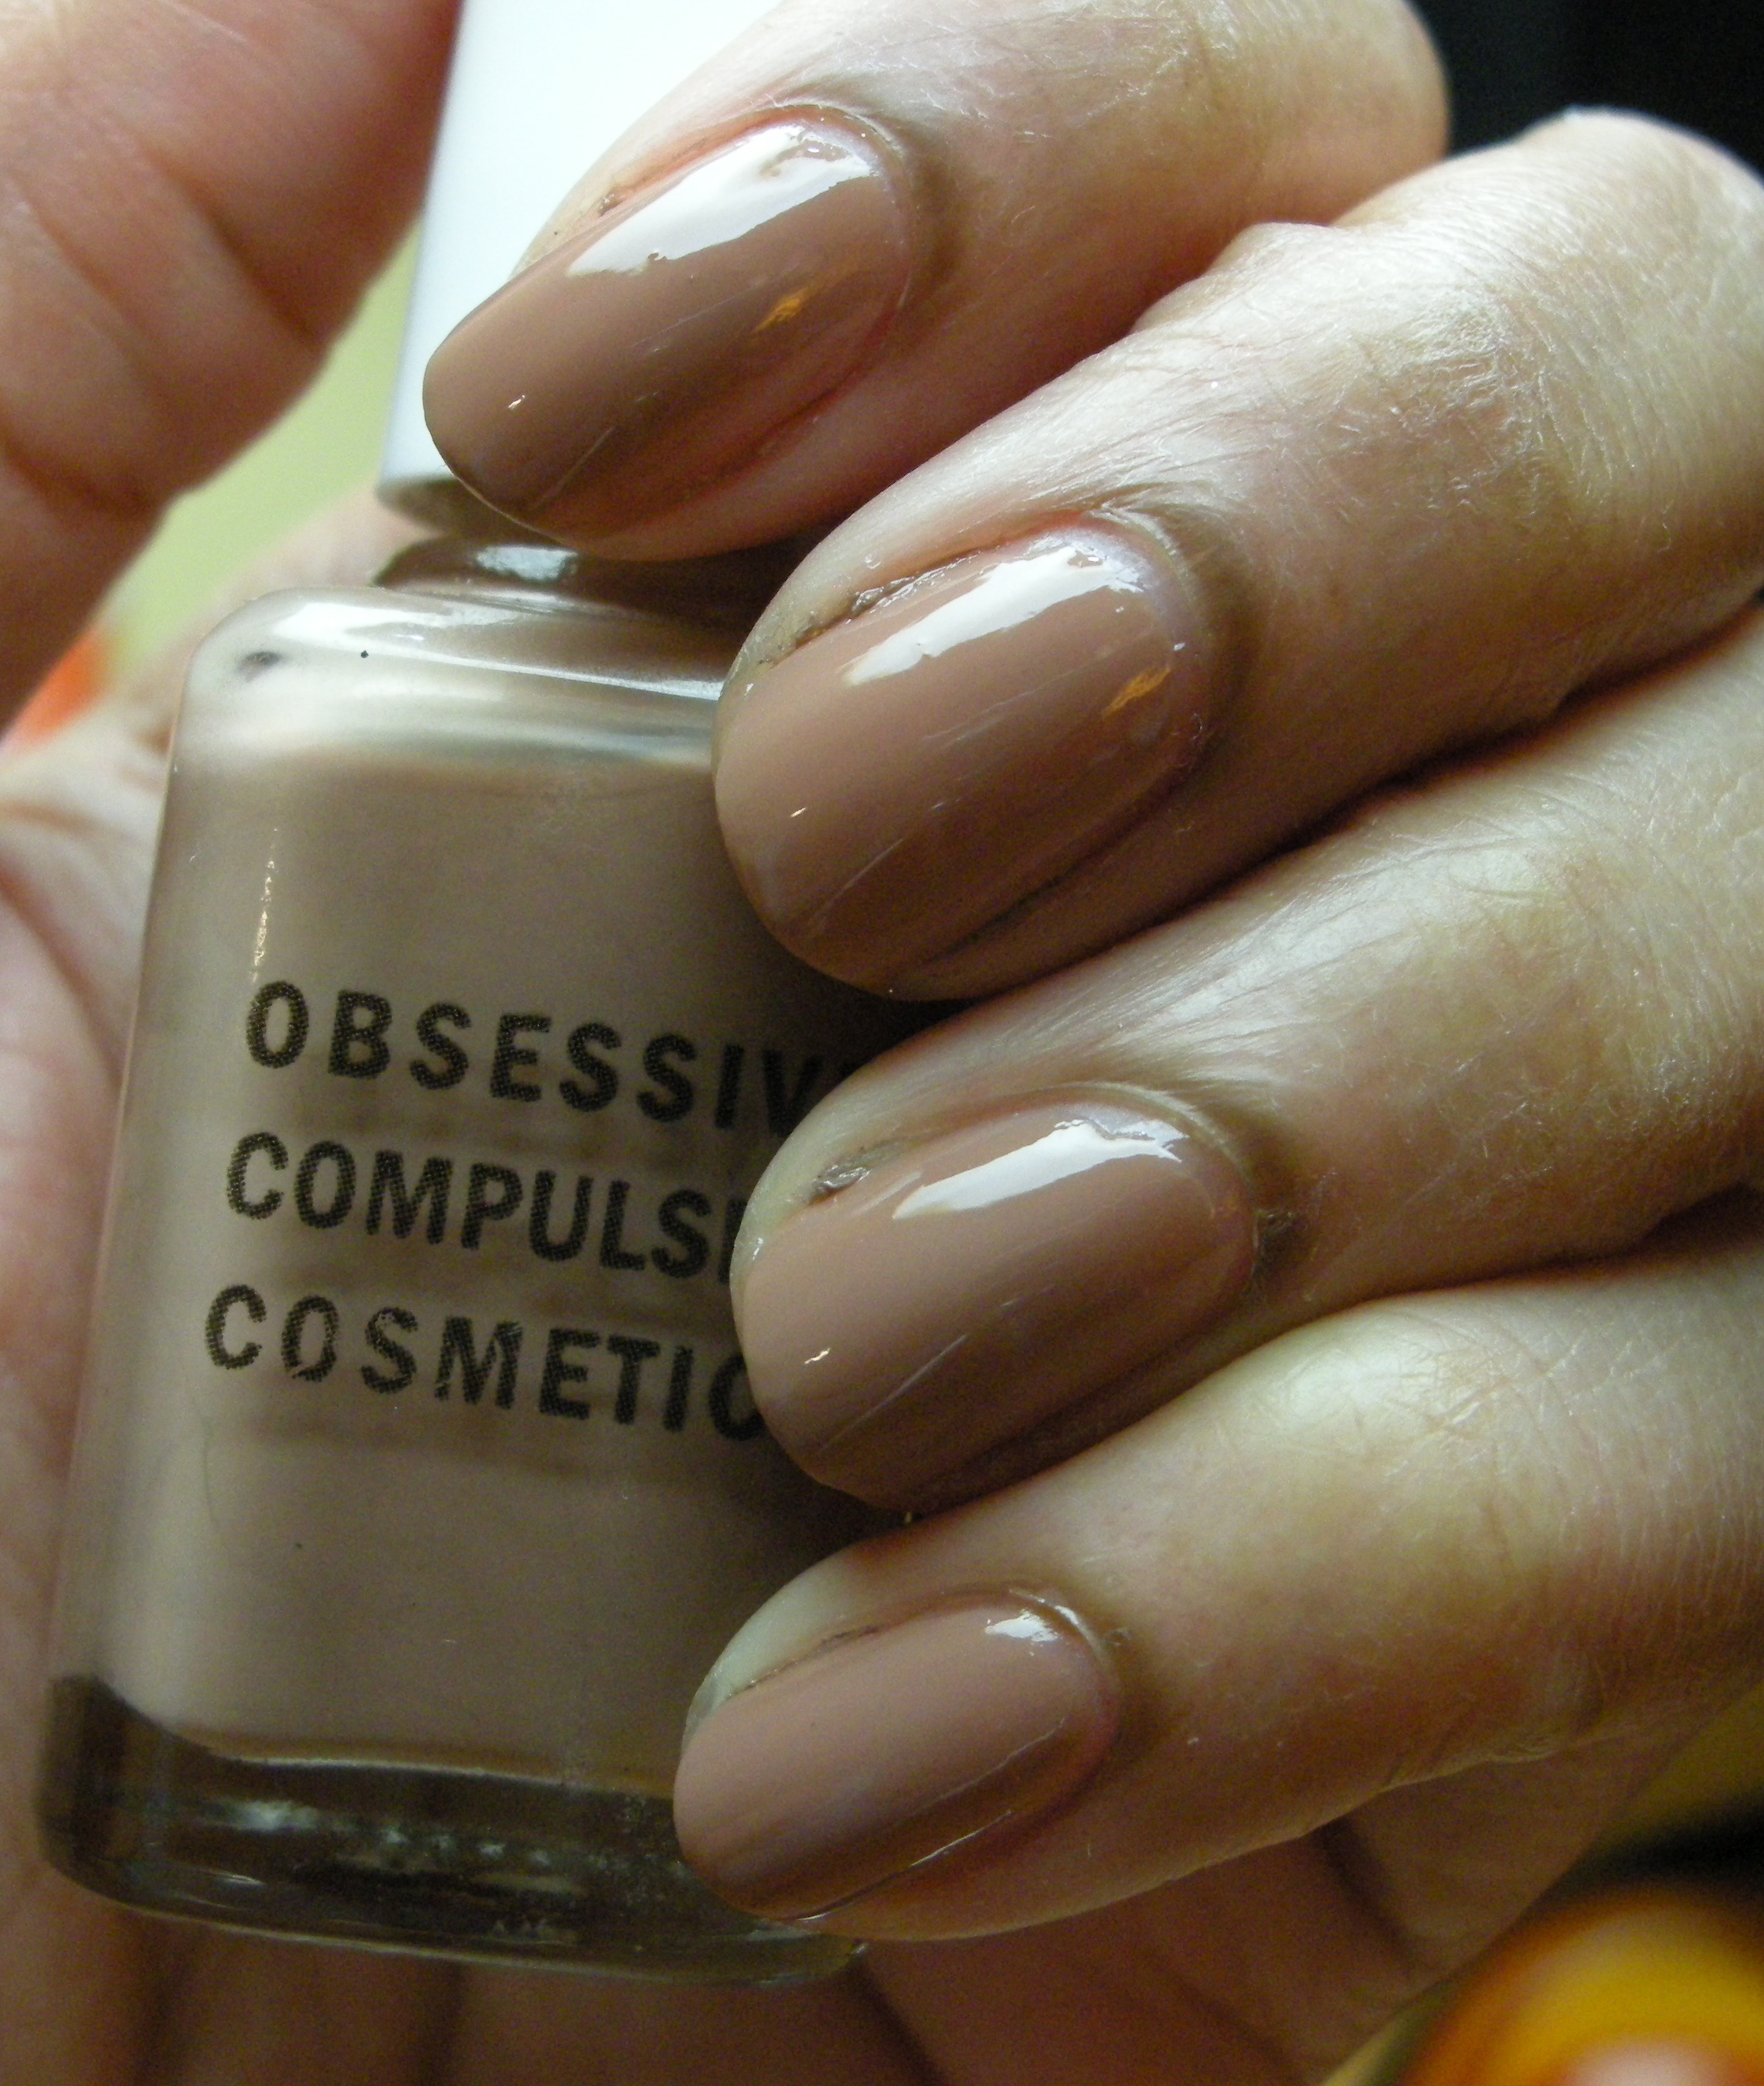 Mannequin Hands with Obsessive Compulsive Cosmetics Uber : All ...